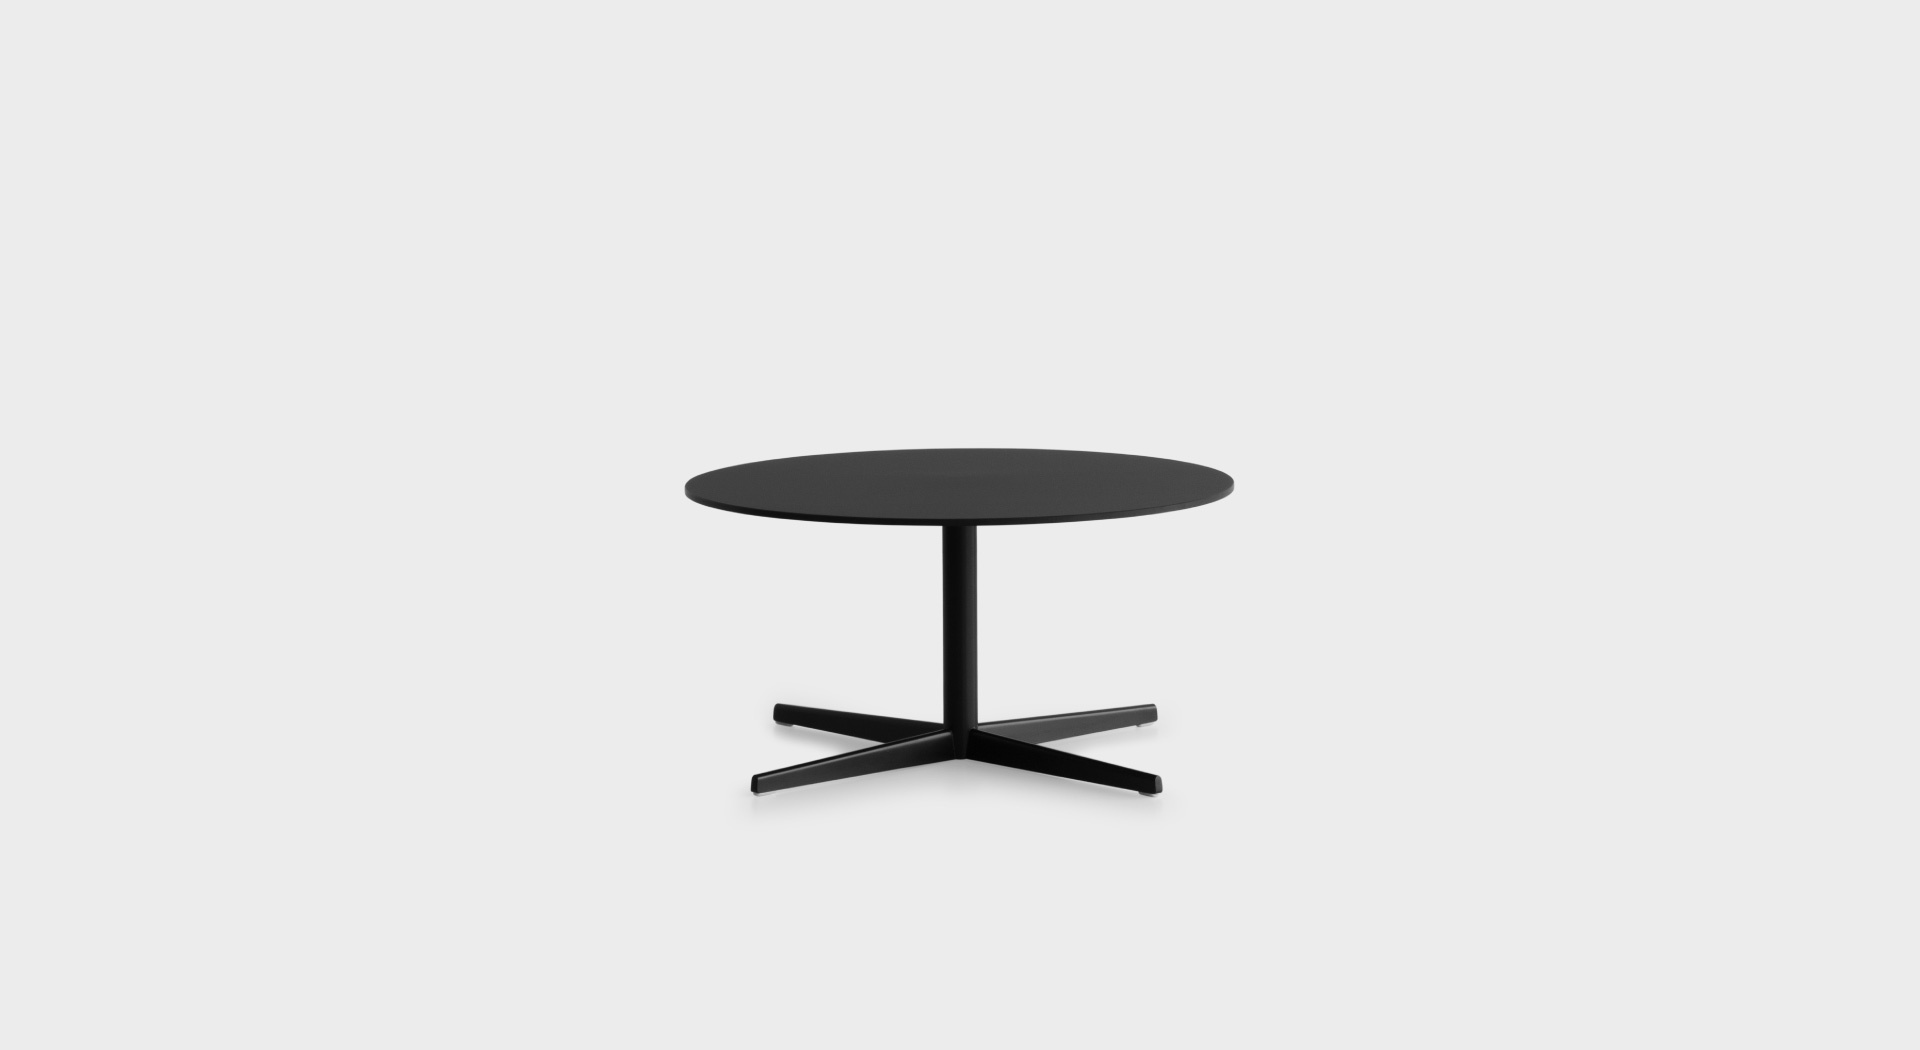 auki h40 outdoor side table for bars